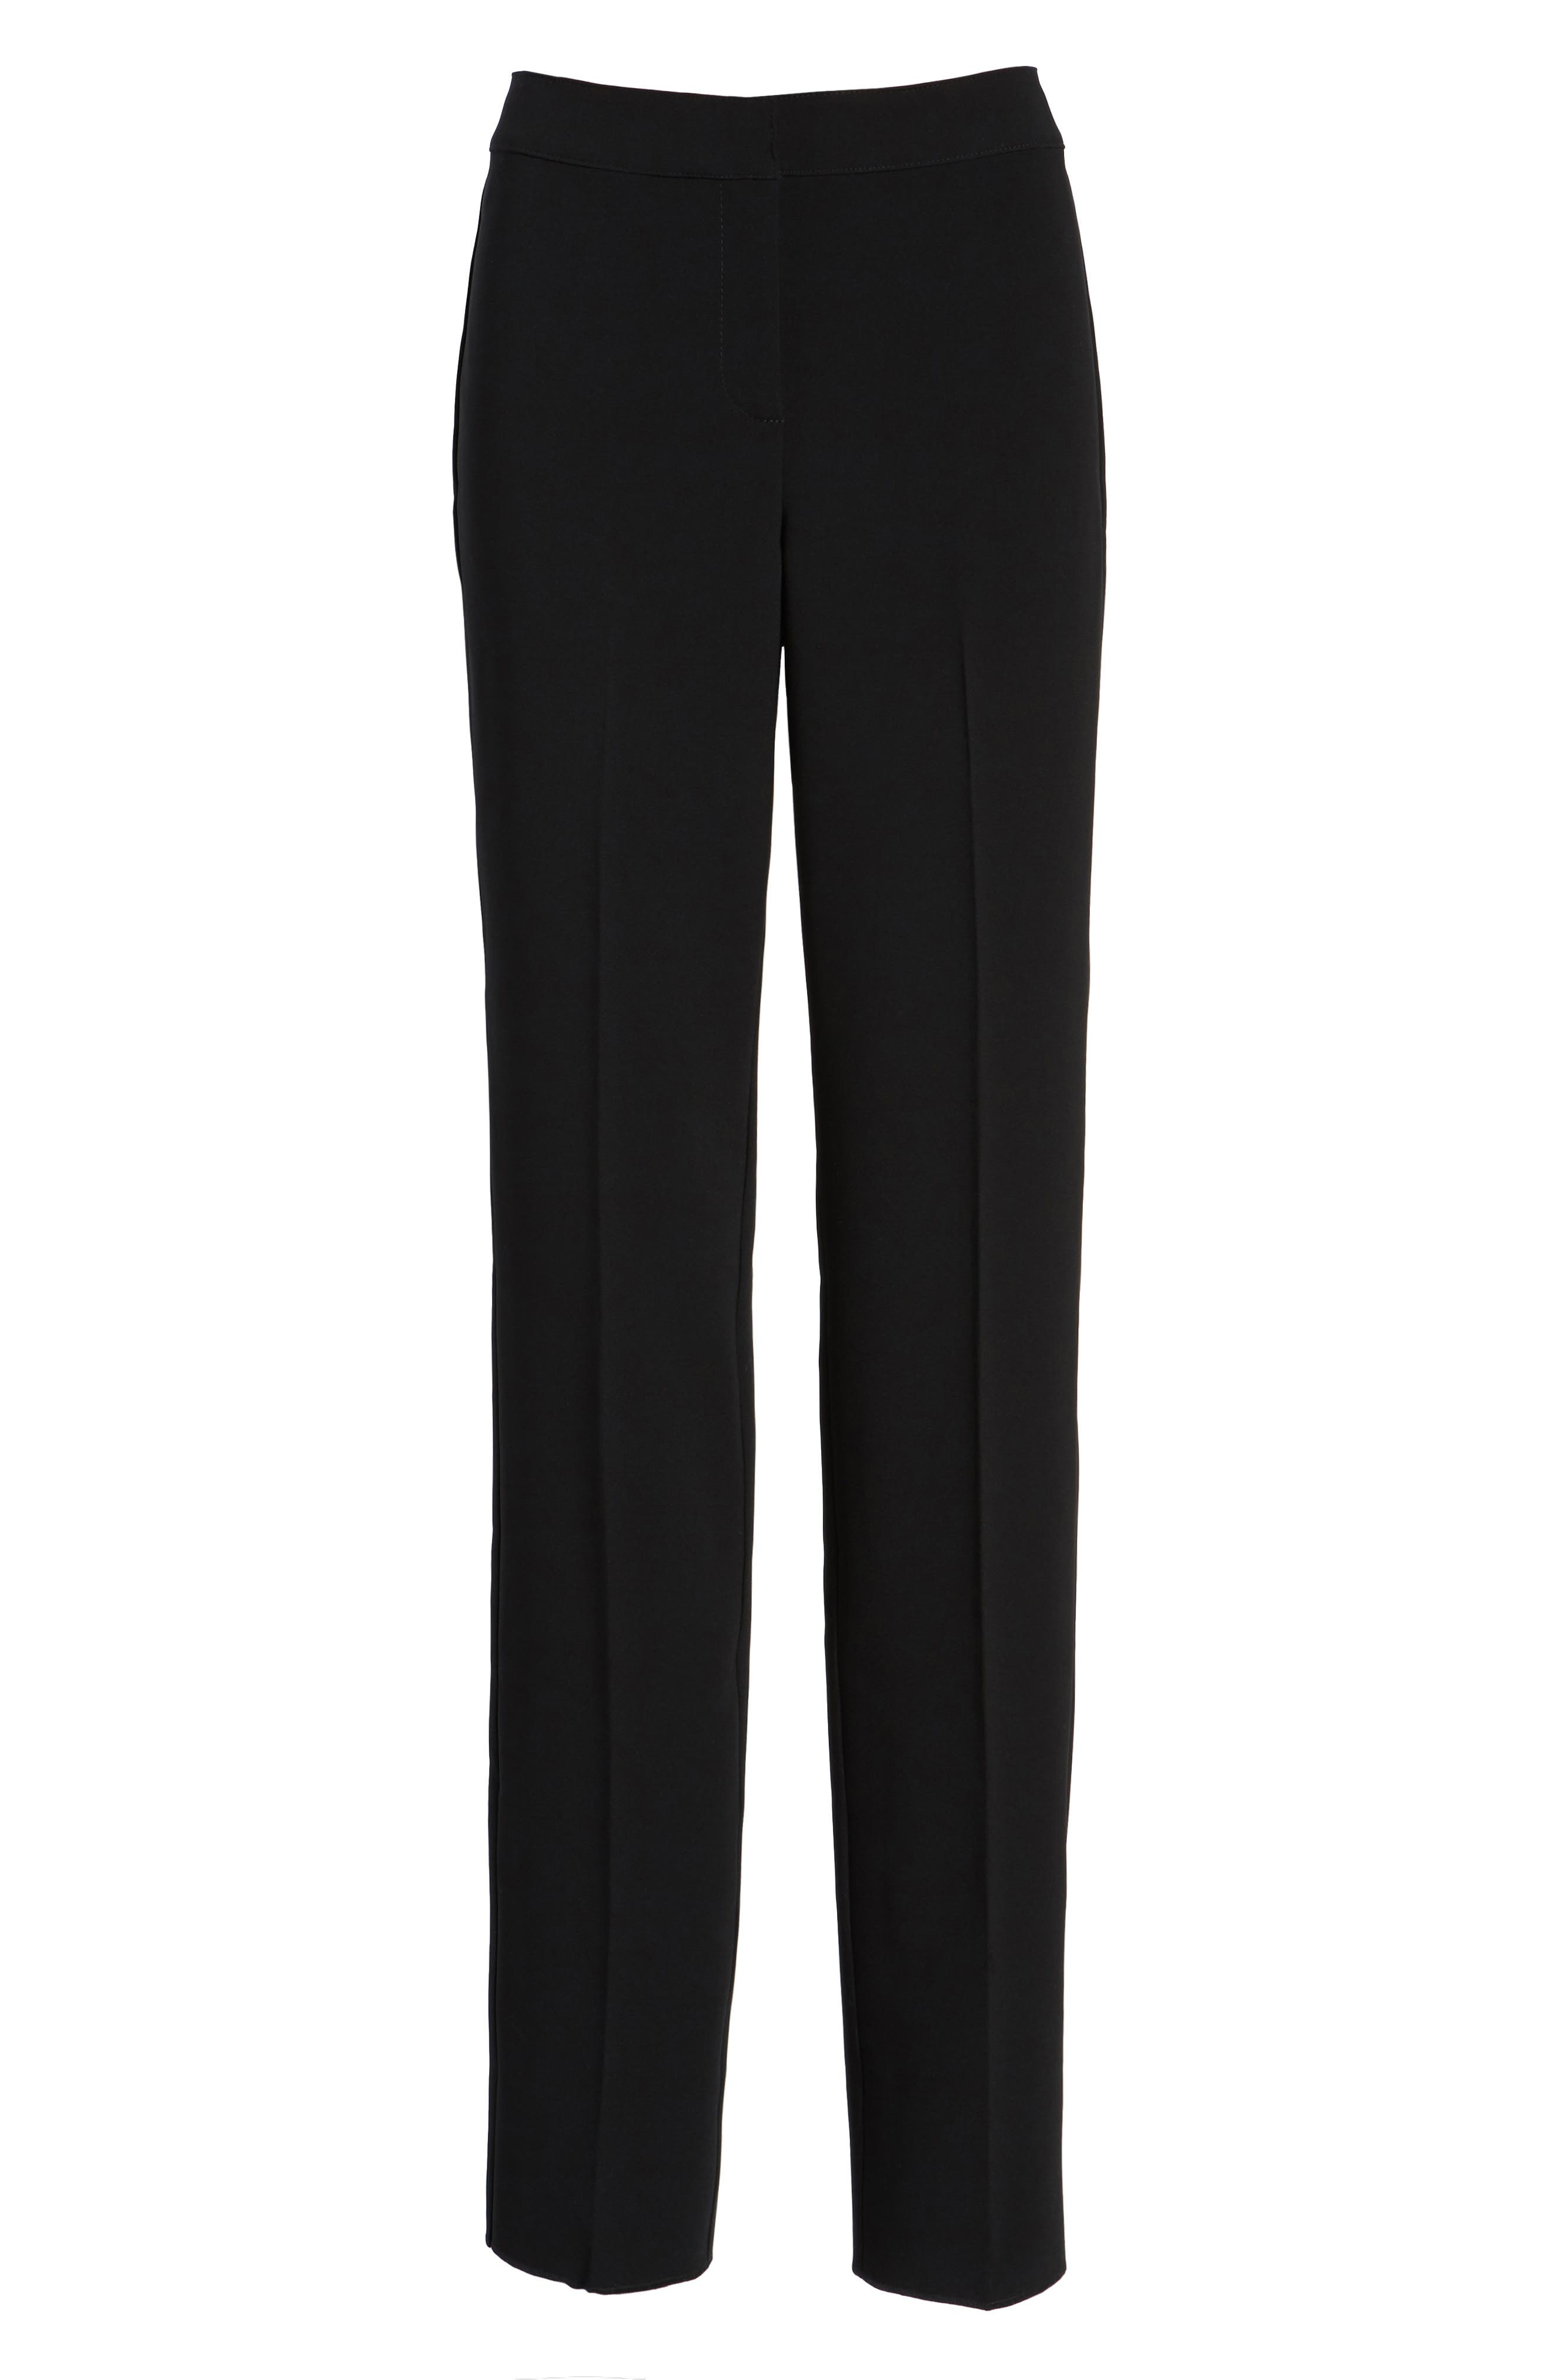 ST. JOHN COLLECTION, Diana Straight Leg Crepe Marocain Pants, Main thumbnail 1, color, CAVIAR